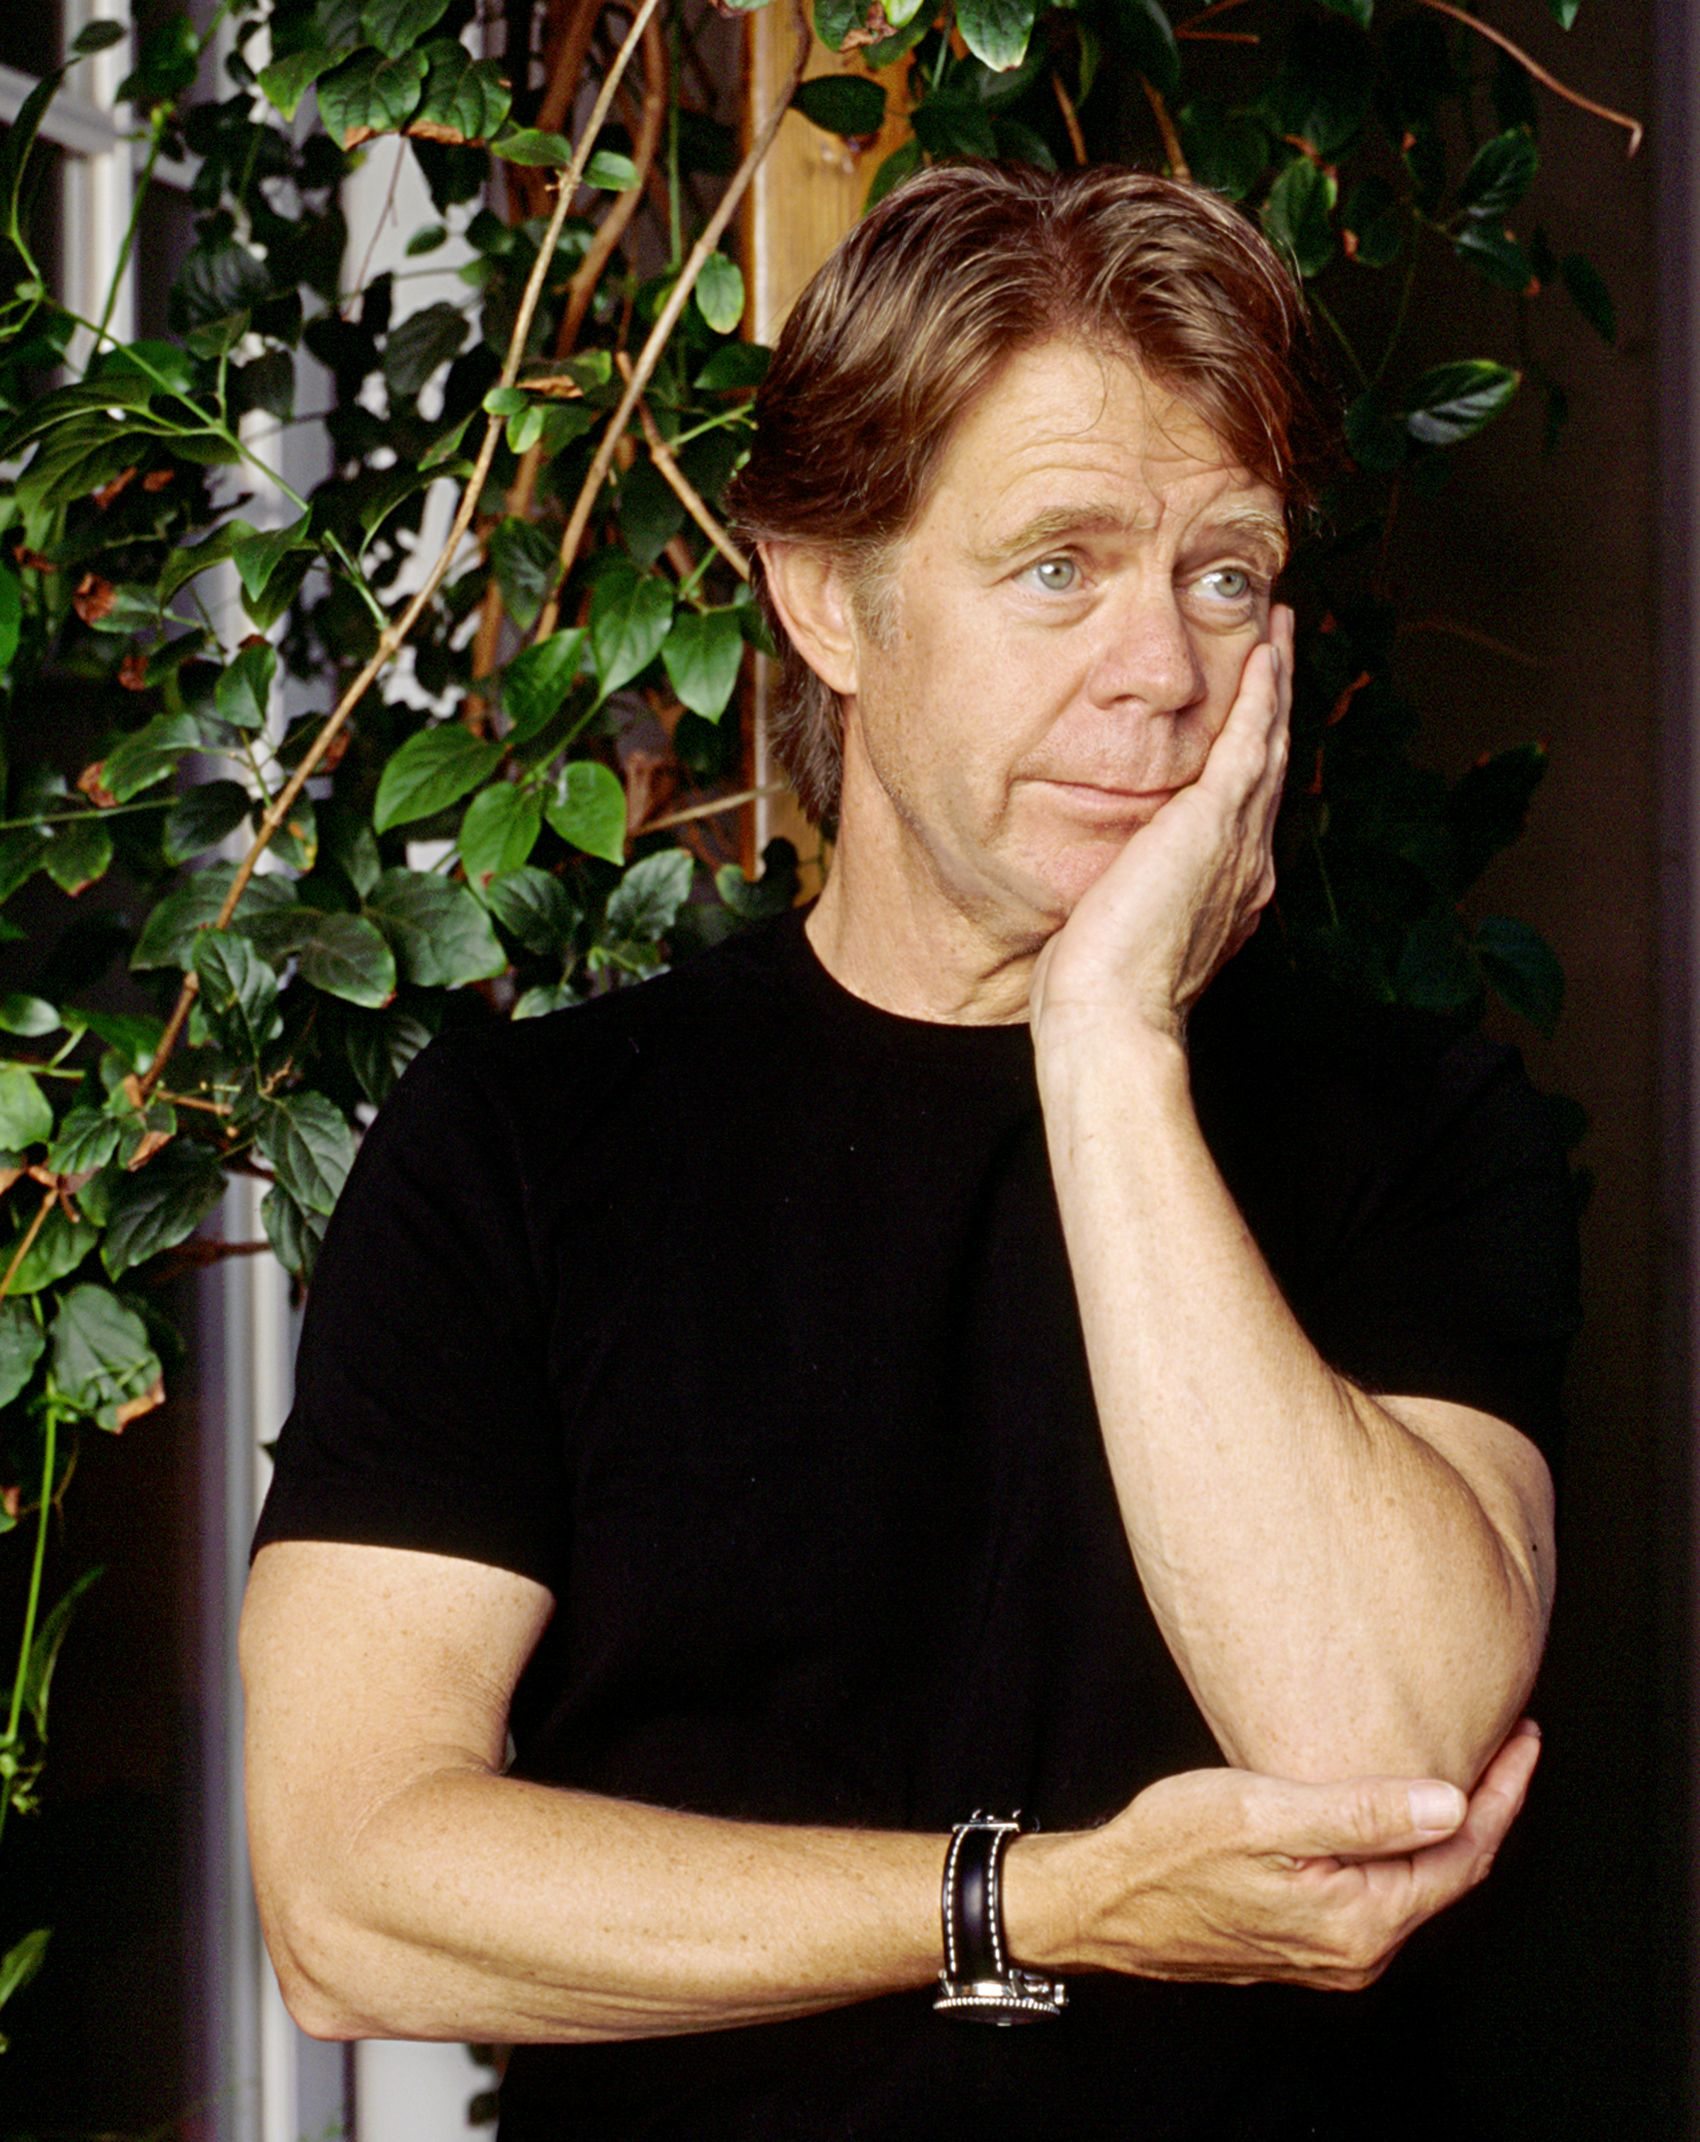 web_WilliamHMacy.jpg